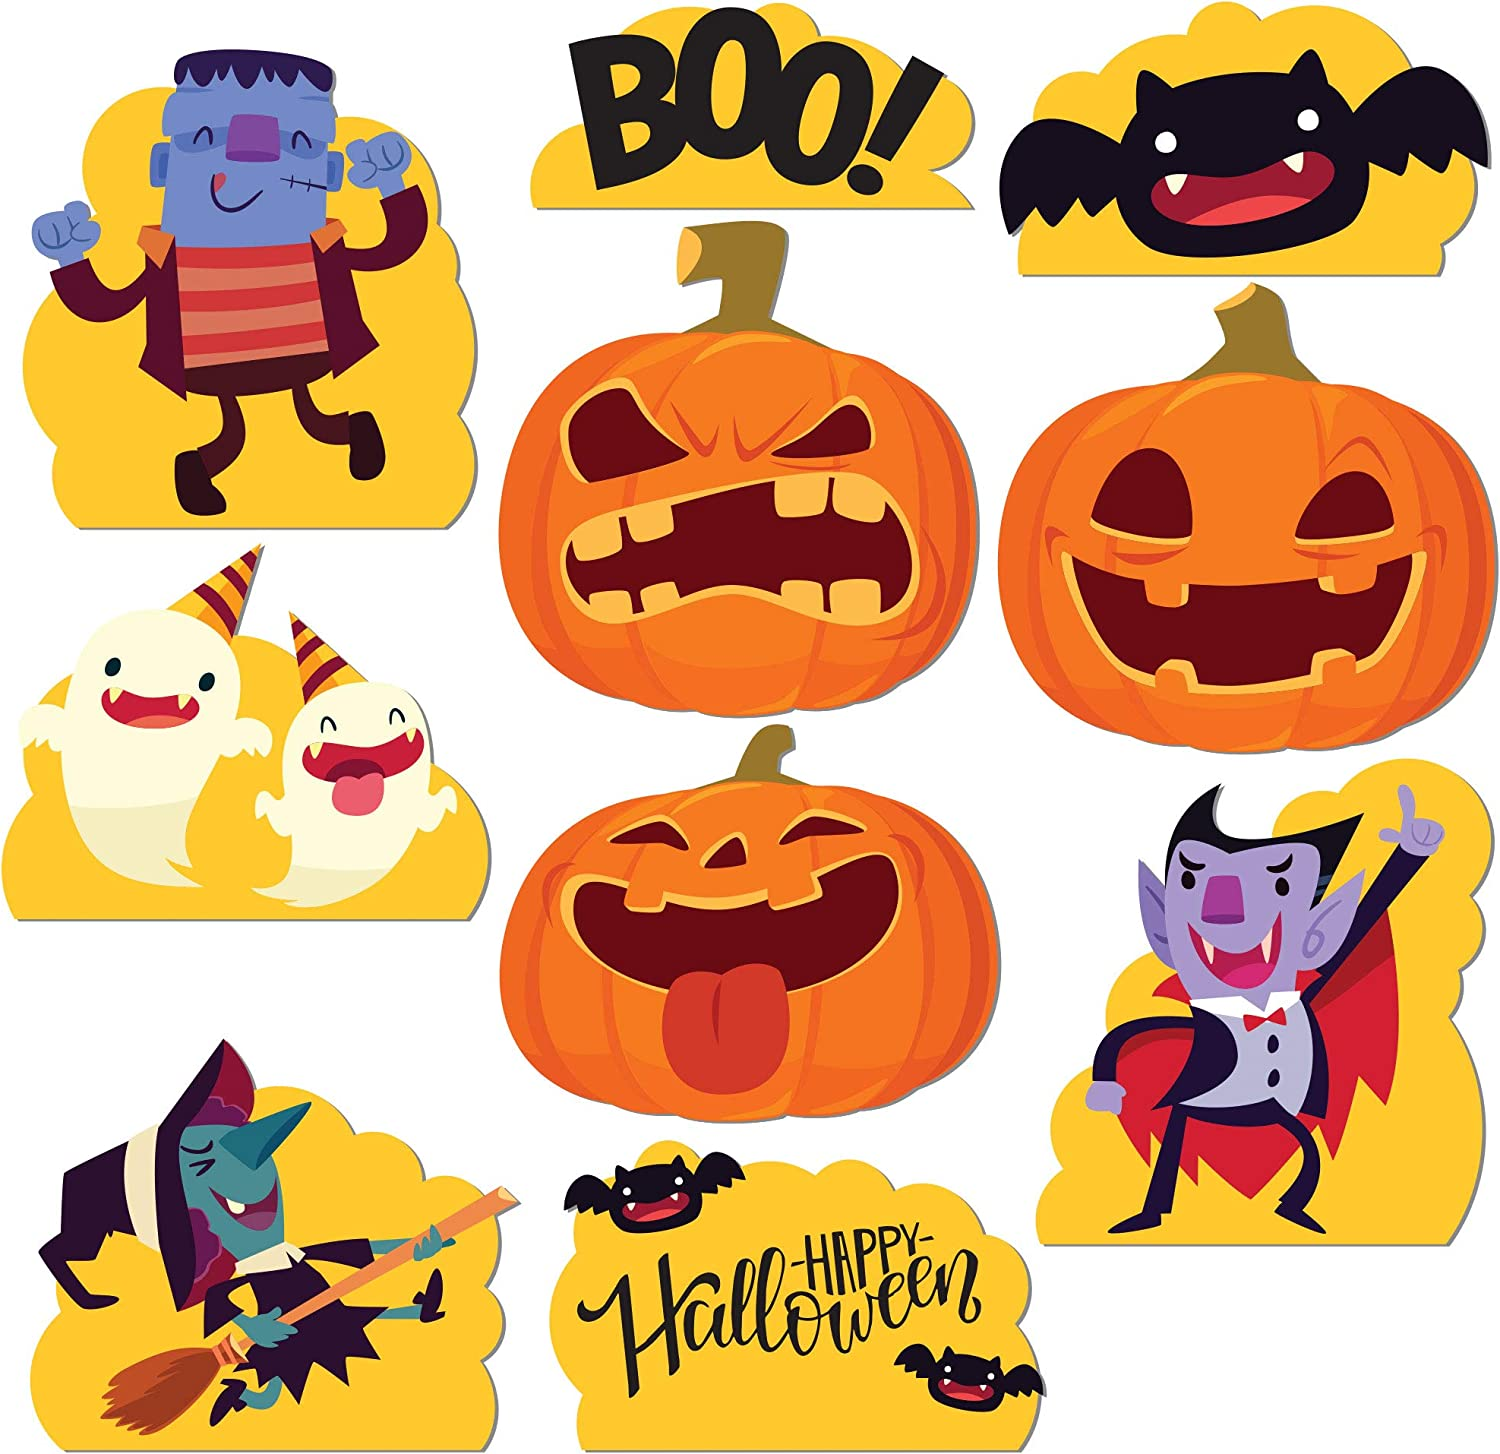 Details about  /Set of 5 Outdoor Halloween Yard Decorations